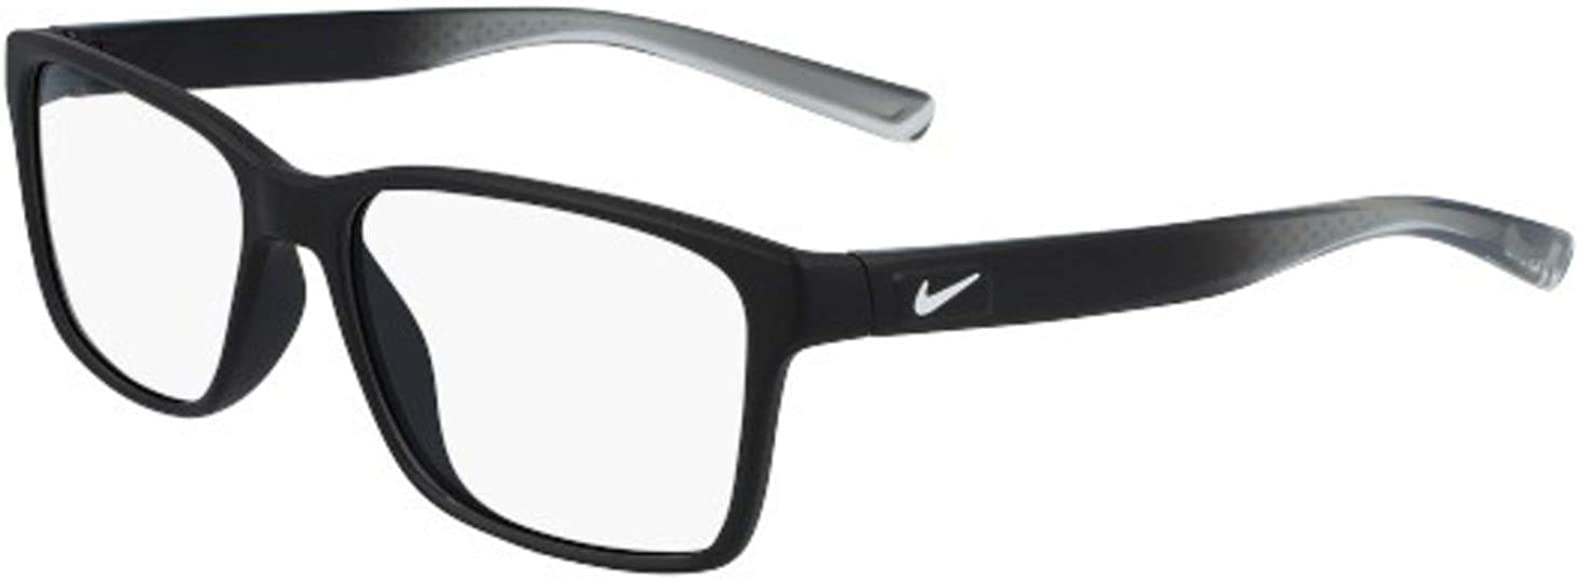 Amazon.com: Gafas de sol NIKE 7091 013 negro mate: Clothing